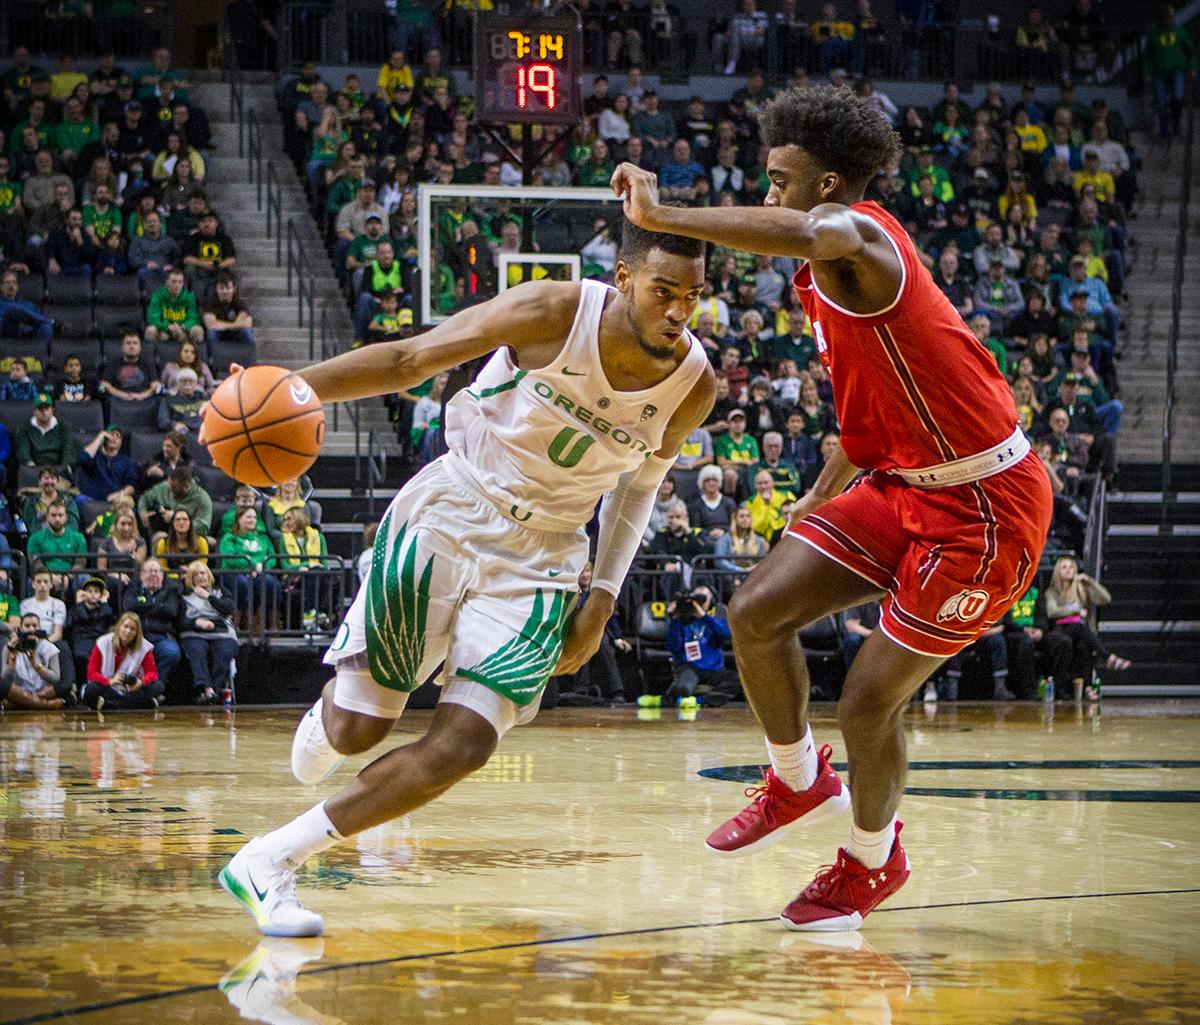 Oregon Ducks Troy Brown (#0) attempts to drive past Utah's defense. The Utah Utes defeated the Oregon Ducks 66-56 on Friday night at Matthew Knight Arena. This is the first Pac-12 conference game loss at home for the Ducks since January of 2015. This also ended the five home game winning streak for the Ducks against the Utah Utes. Photo by Rhianna Gelhart, Oregon News Lab